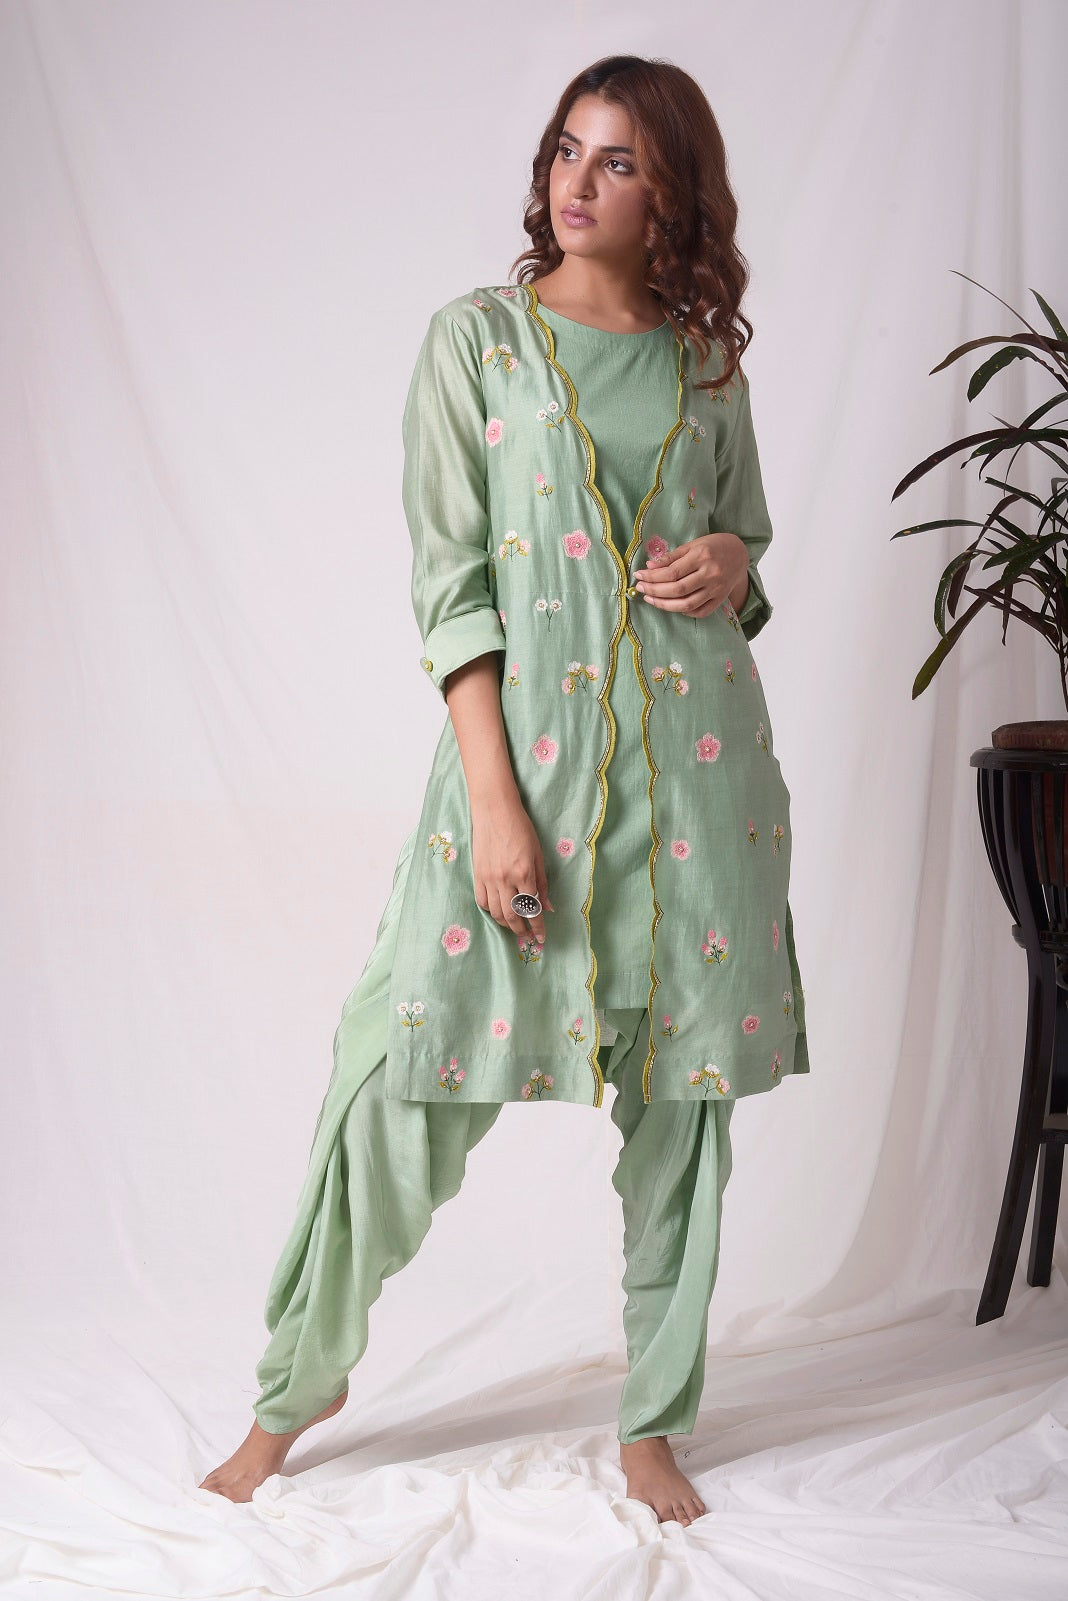 Sage Green Chanderi Suit With Jacket And Dhoti Online in USA-full view-2